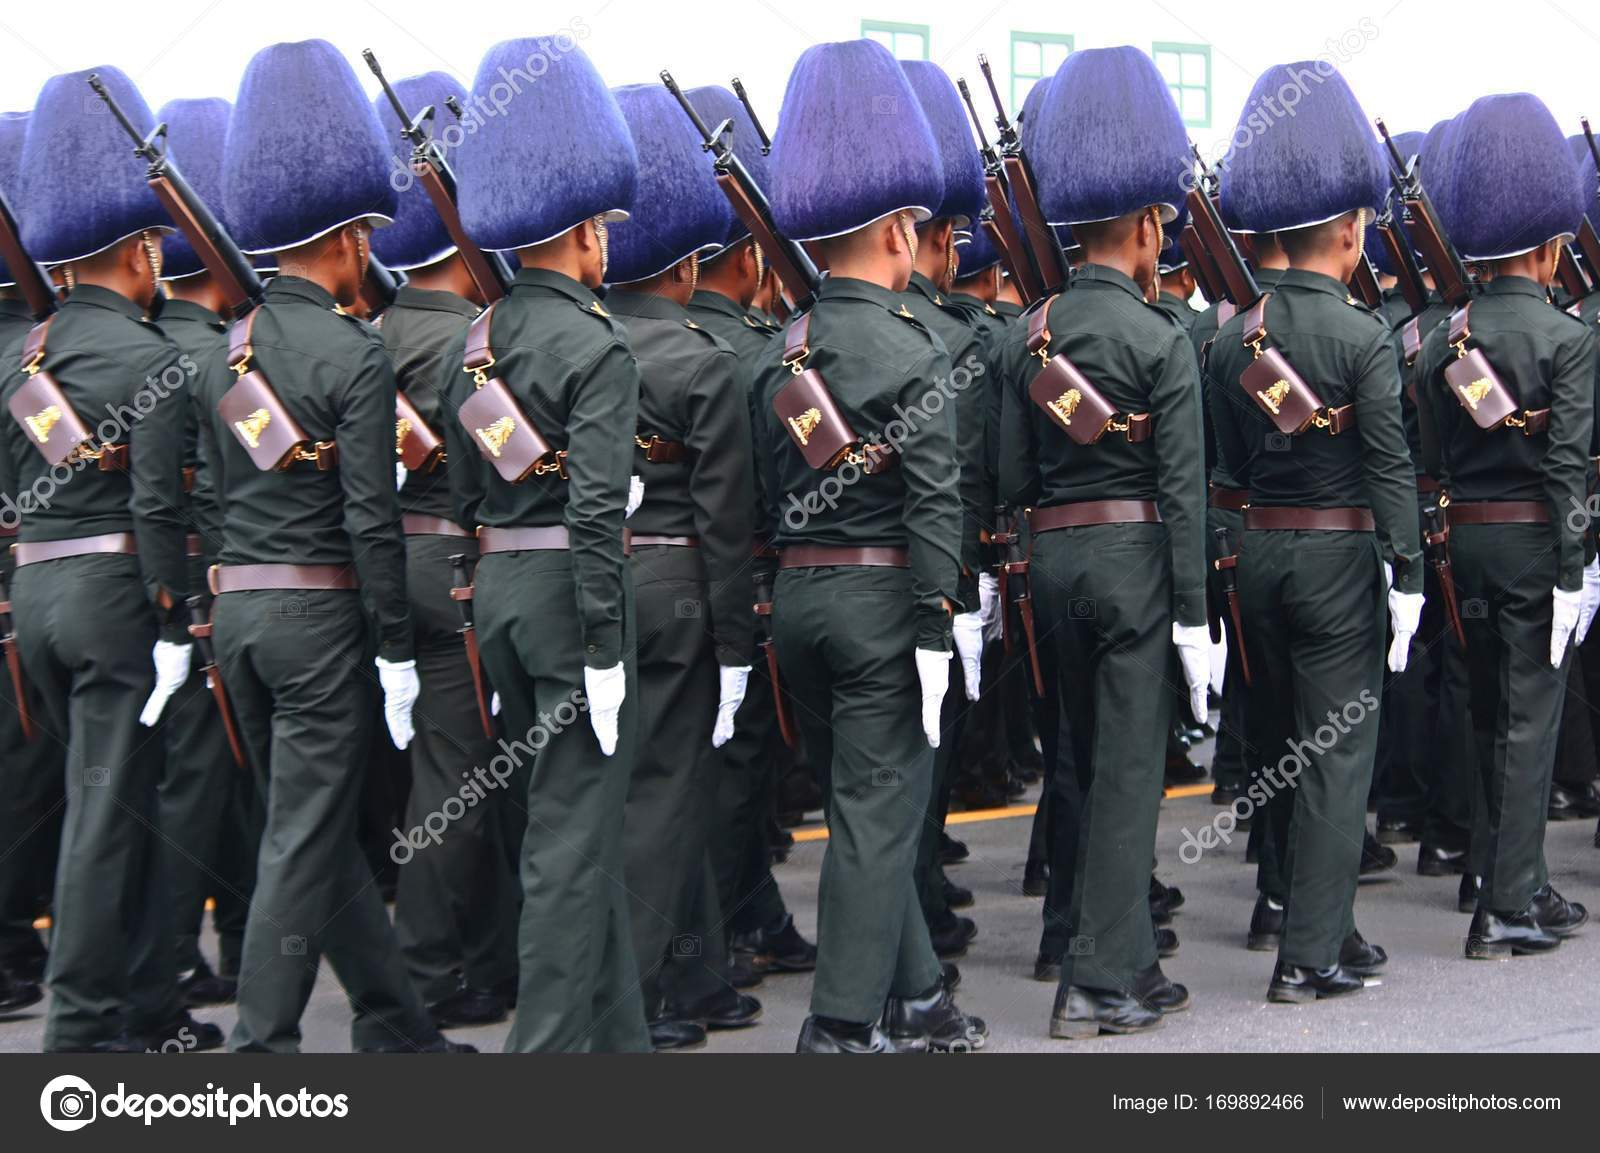 The Motion of Royal Thai Army – Stock Editorial Photo © Gap